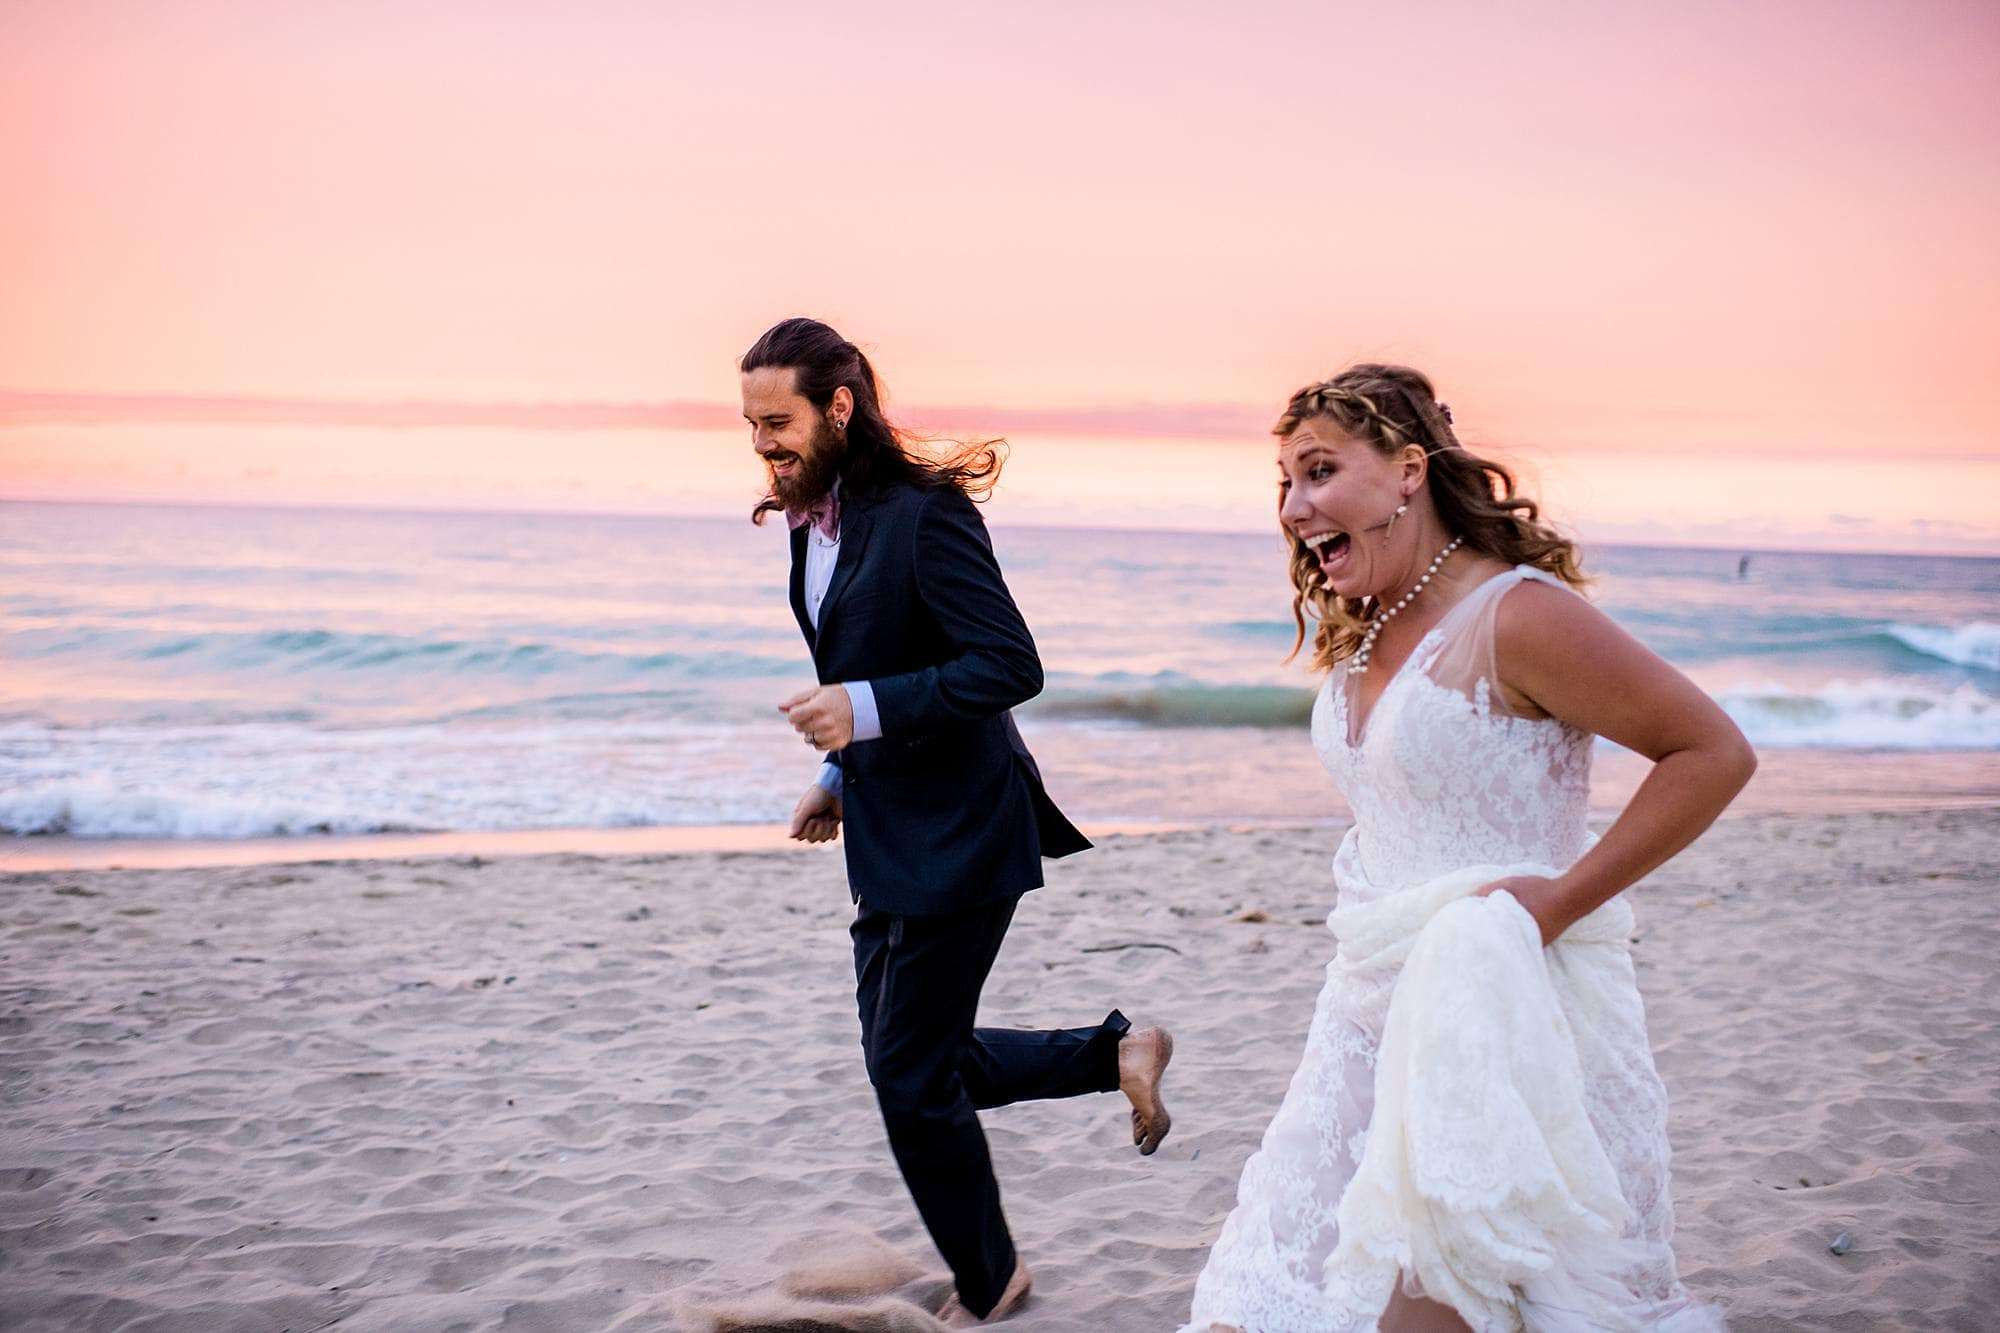 bride and groom running on the beach at lake michigan